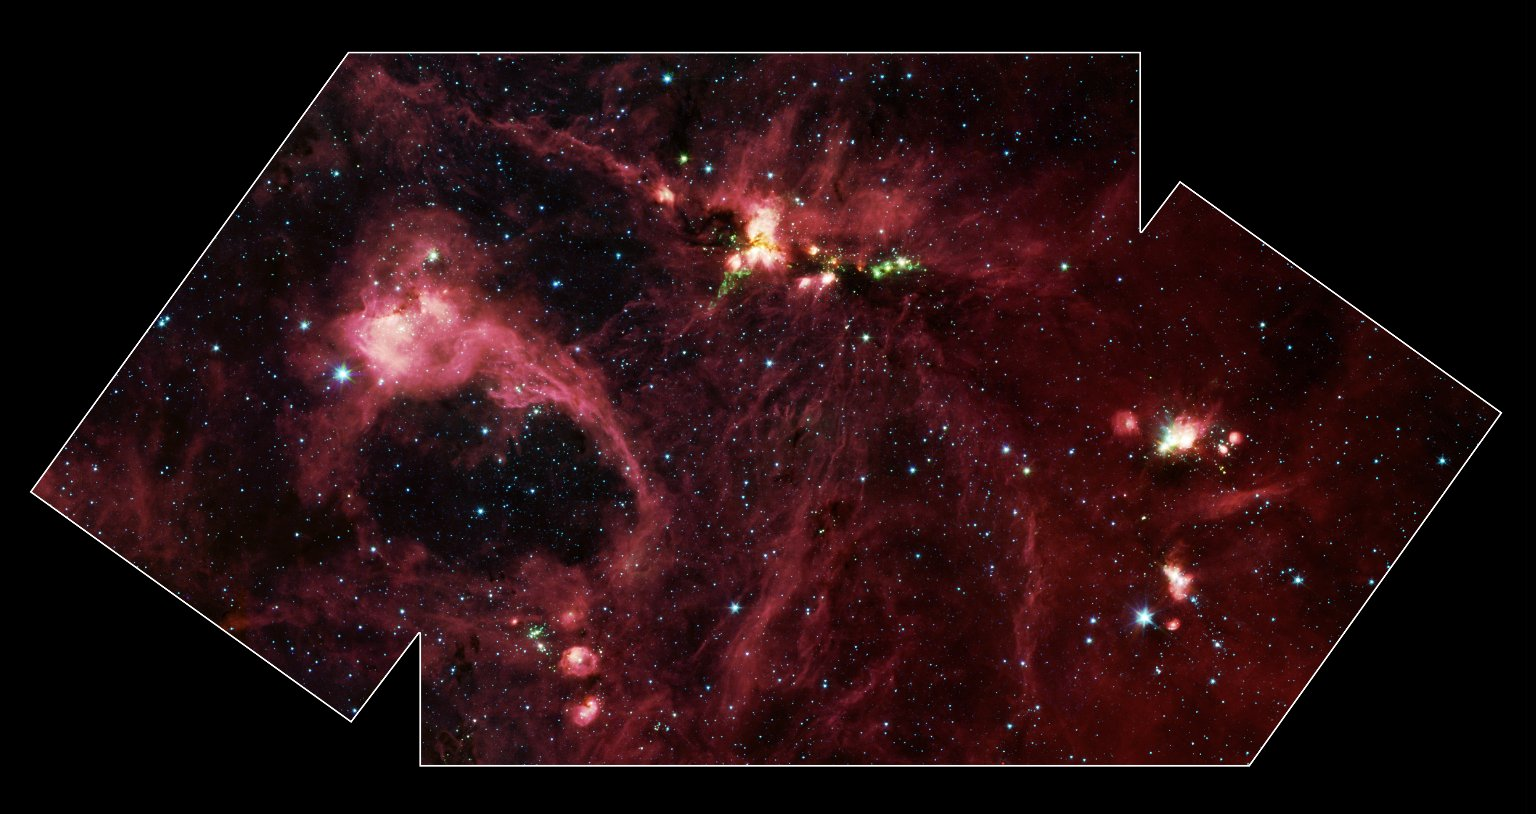 Massive Star Forming Region DR21 in Infrared